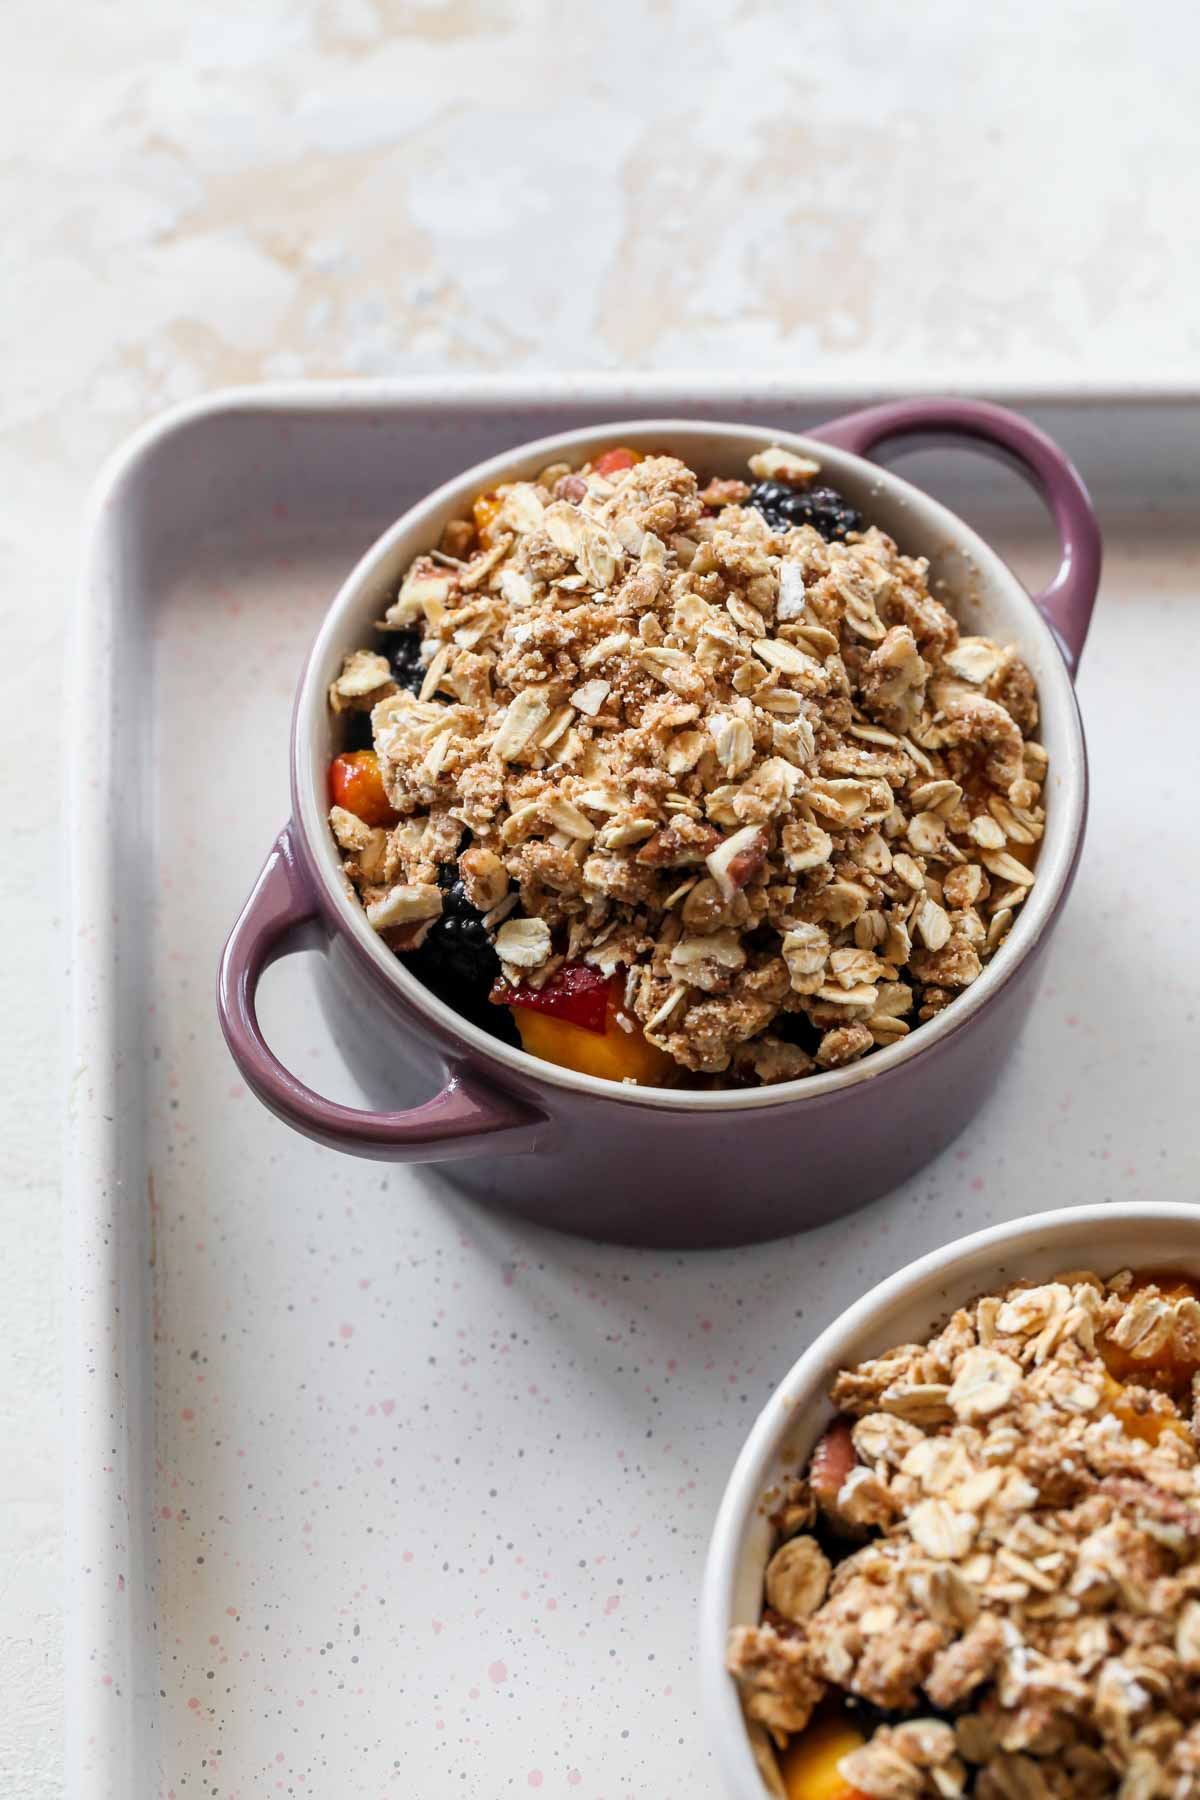 A mini ramekin filled with fruit mixture and oat topping